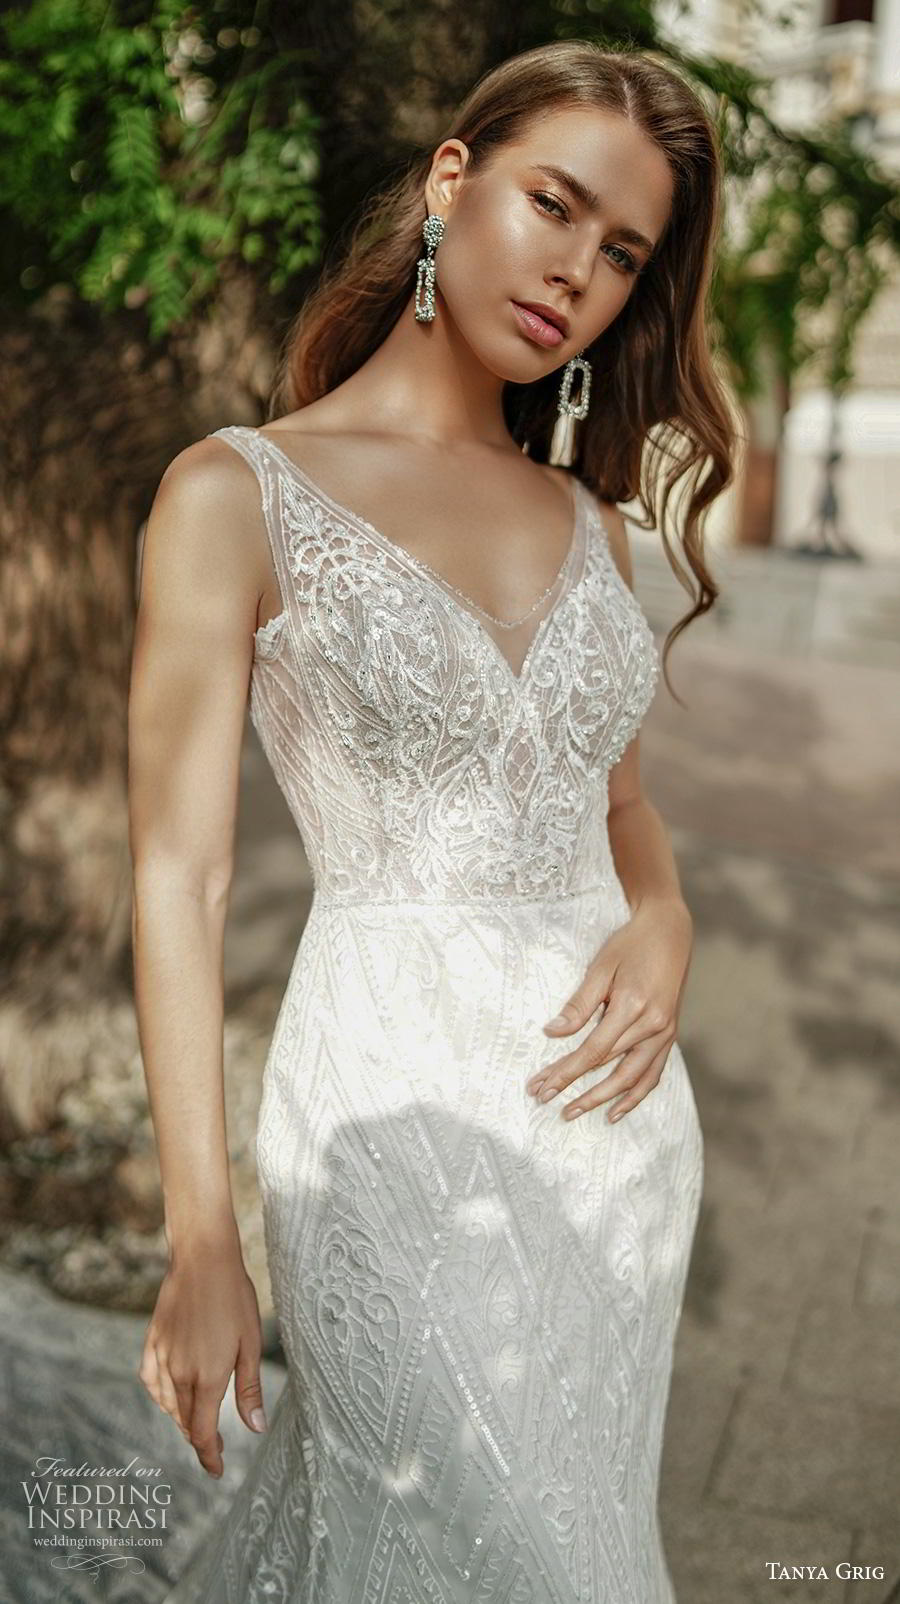 tanya grig 2020 bridal sleeveless with strap v neck full embellishment elegant glamorous fit and flare wedding dress backless sweep train (17) zv